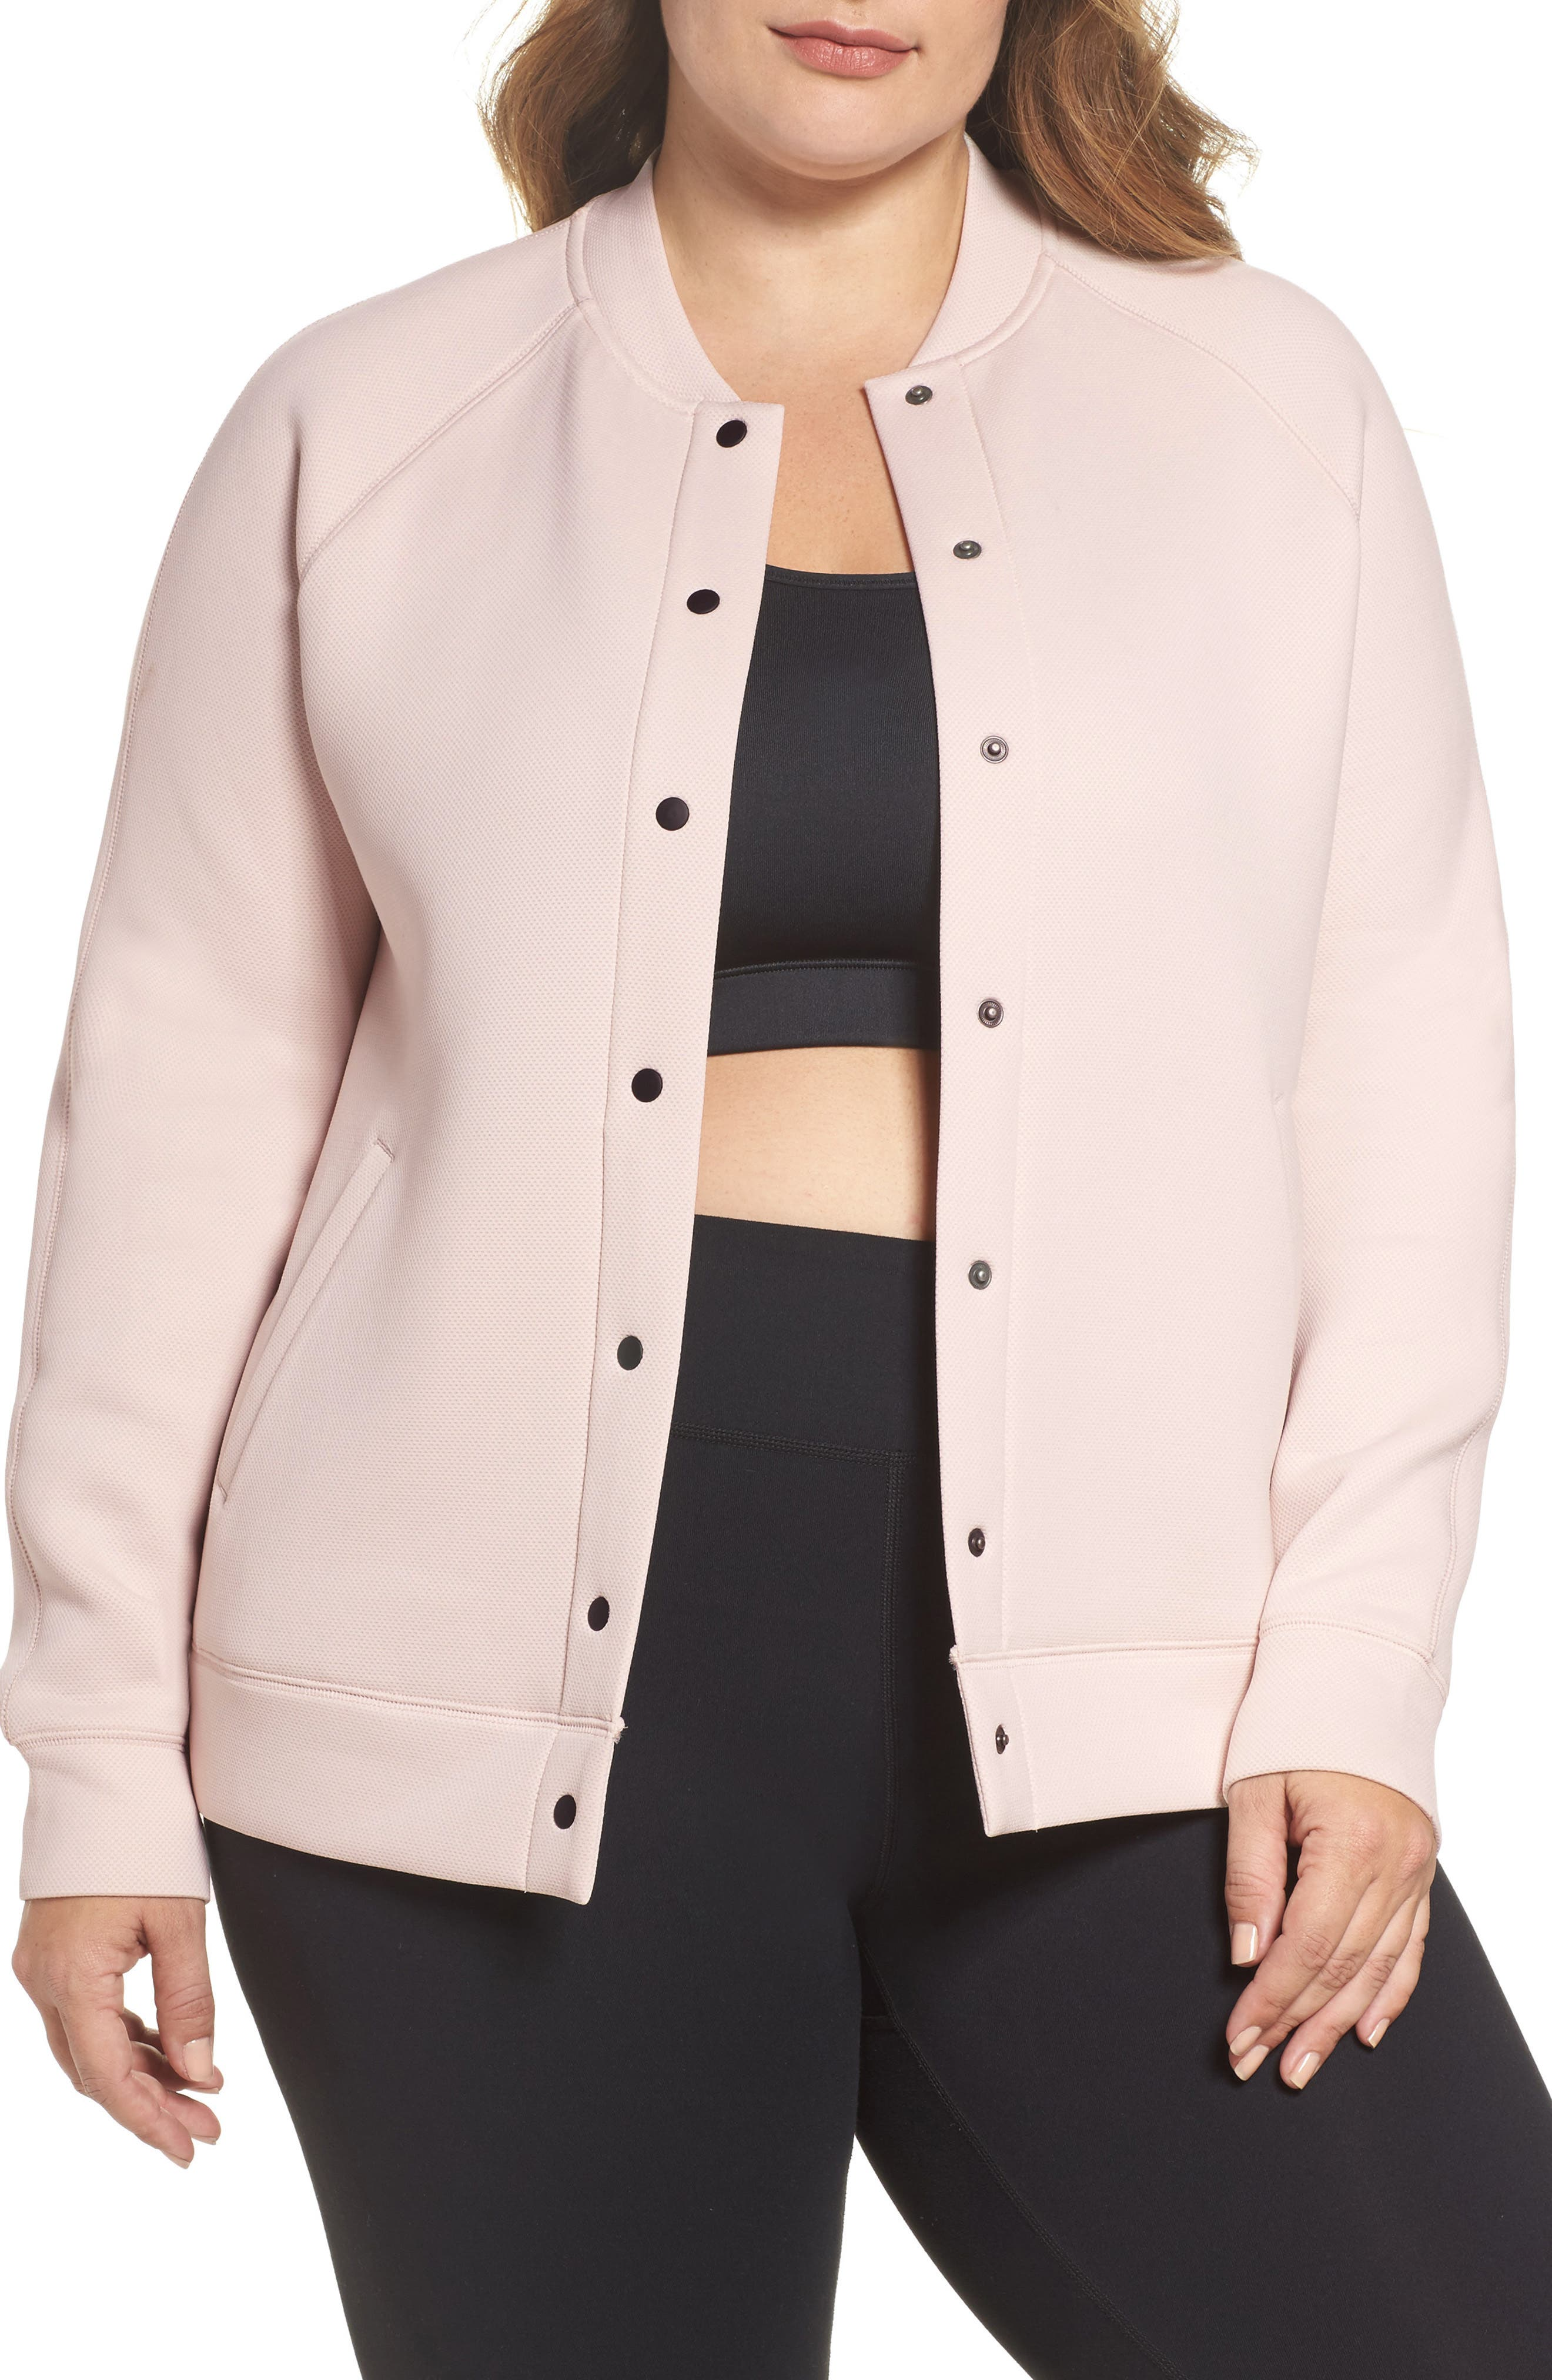 Arise Luxe Bomber Jacket,                             Main thumbnail 1, color,                             Pink Morganite